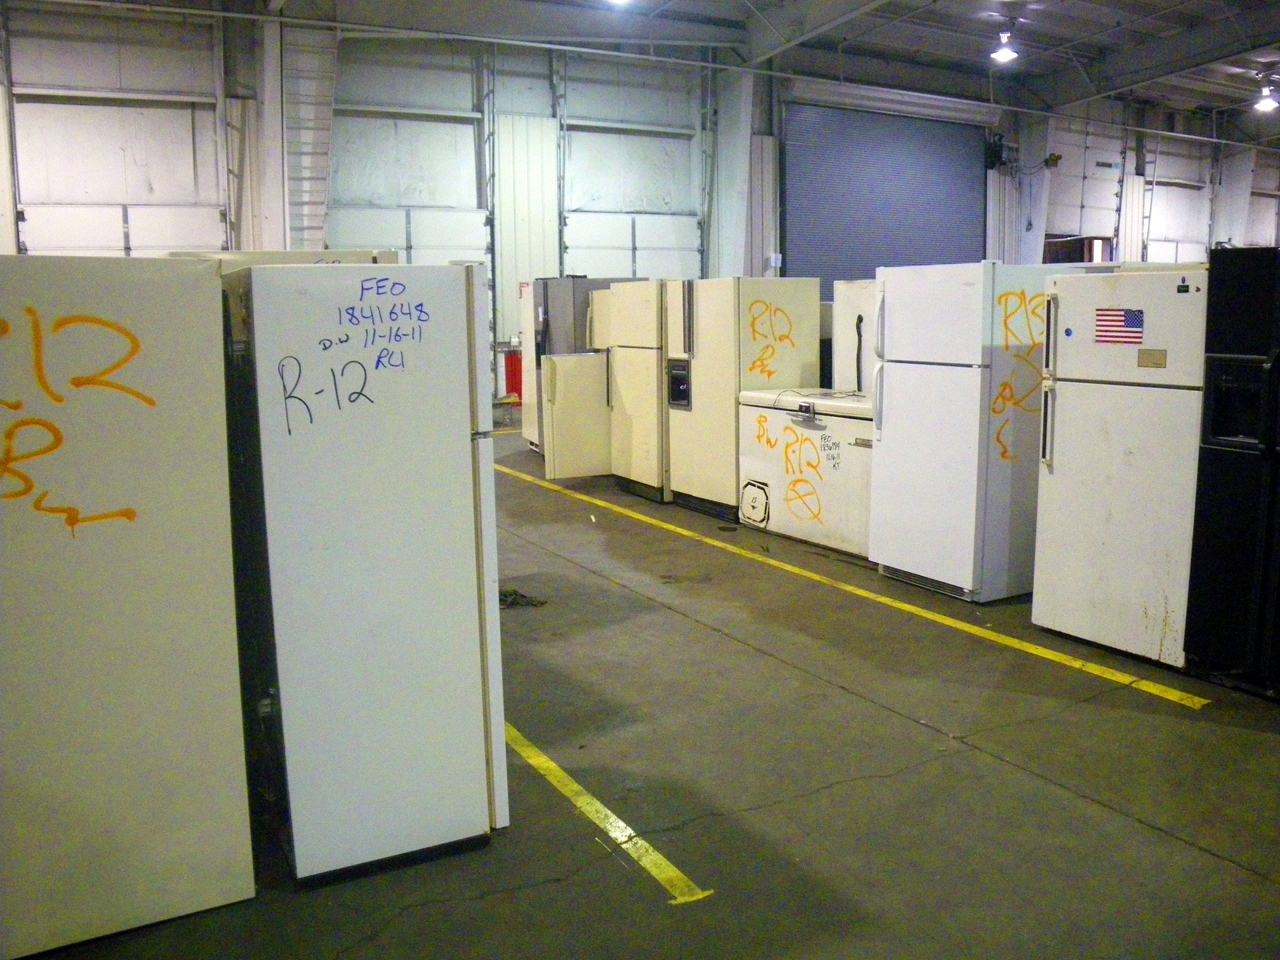 Refrigerators to be recycled